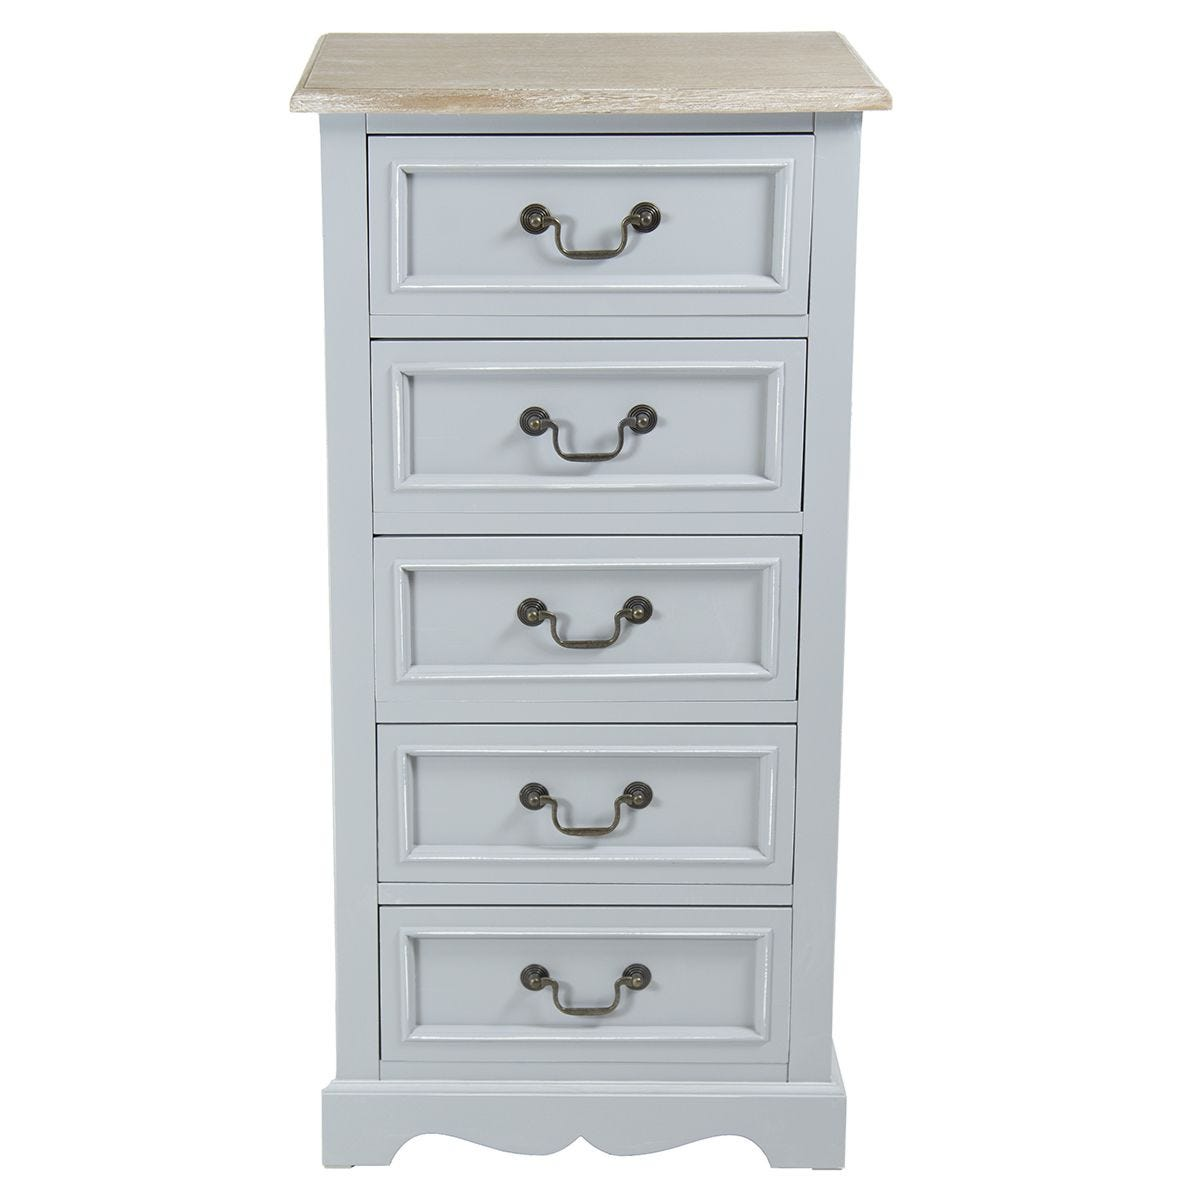 Charles Bentley Loxley Vintage Tall Boy Cabinet - Grey